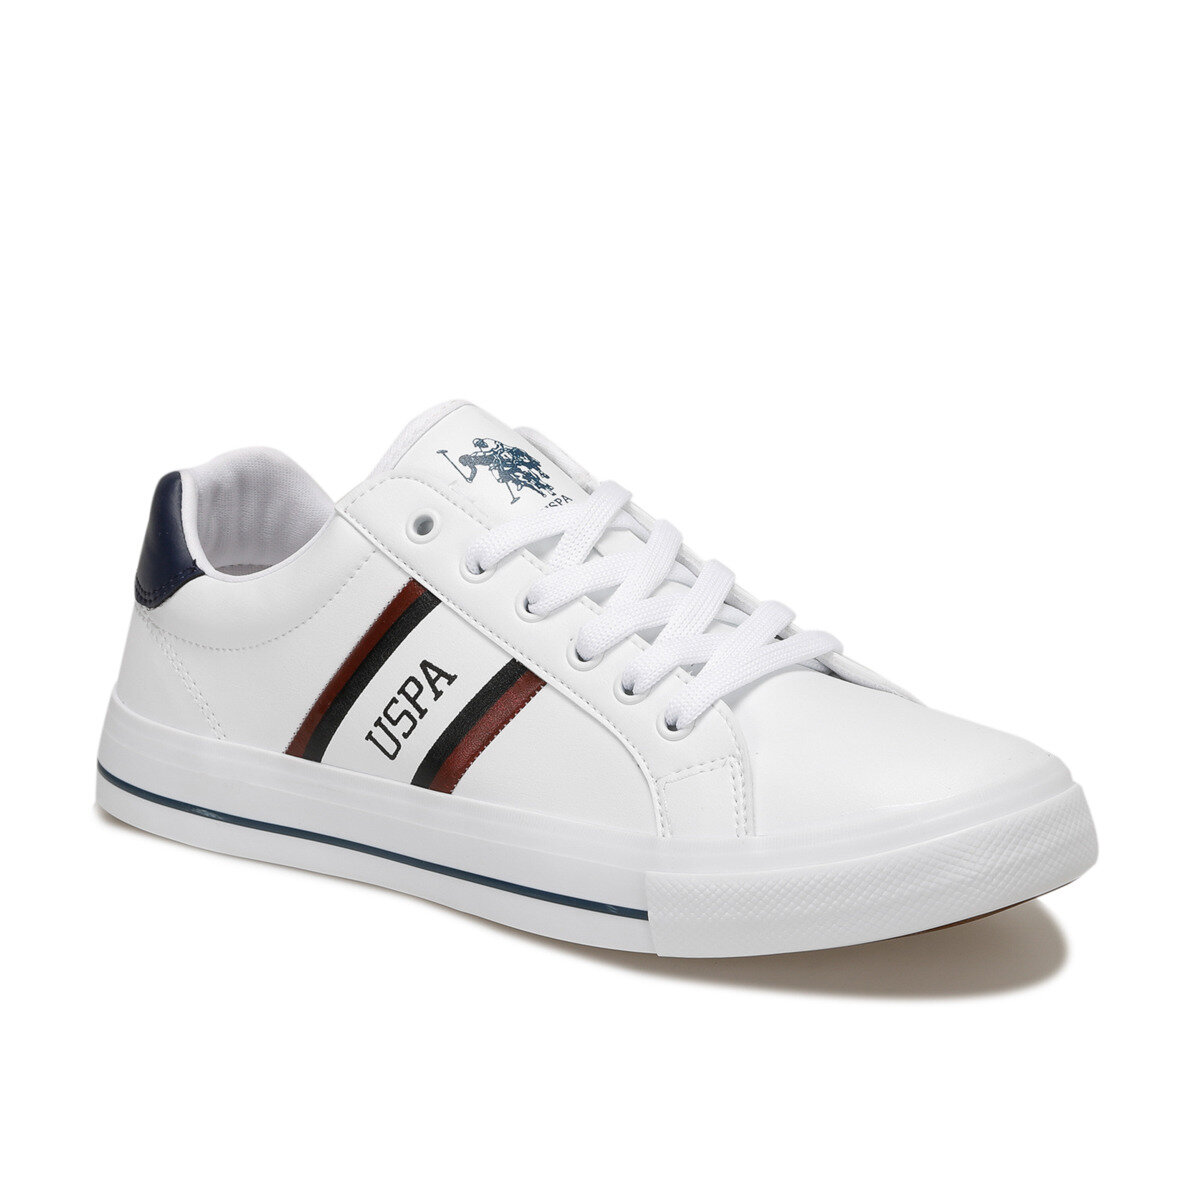 FLO PURE White Men 'S Sneaker U.S. POLO ASSN.